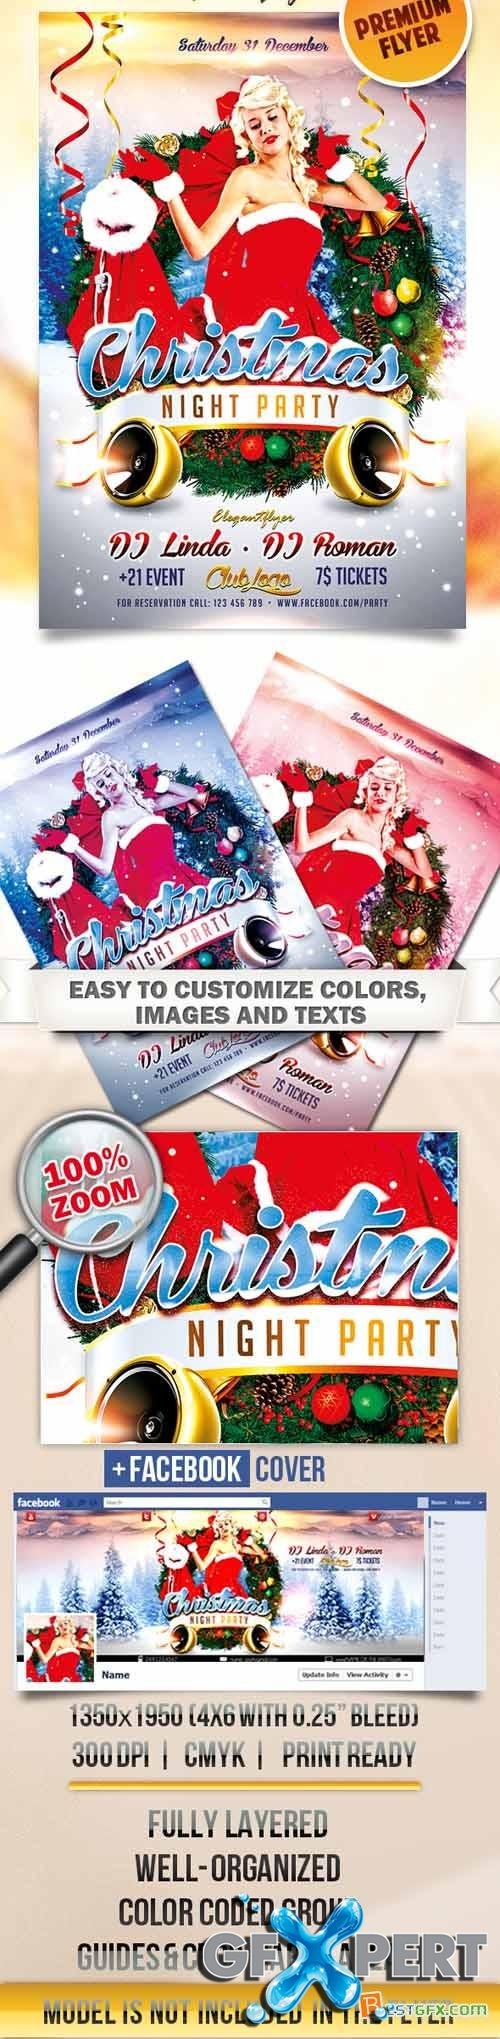 Flyer PSD Template - Christmas Night Party + Facebook Cover